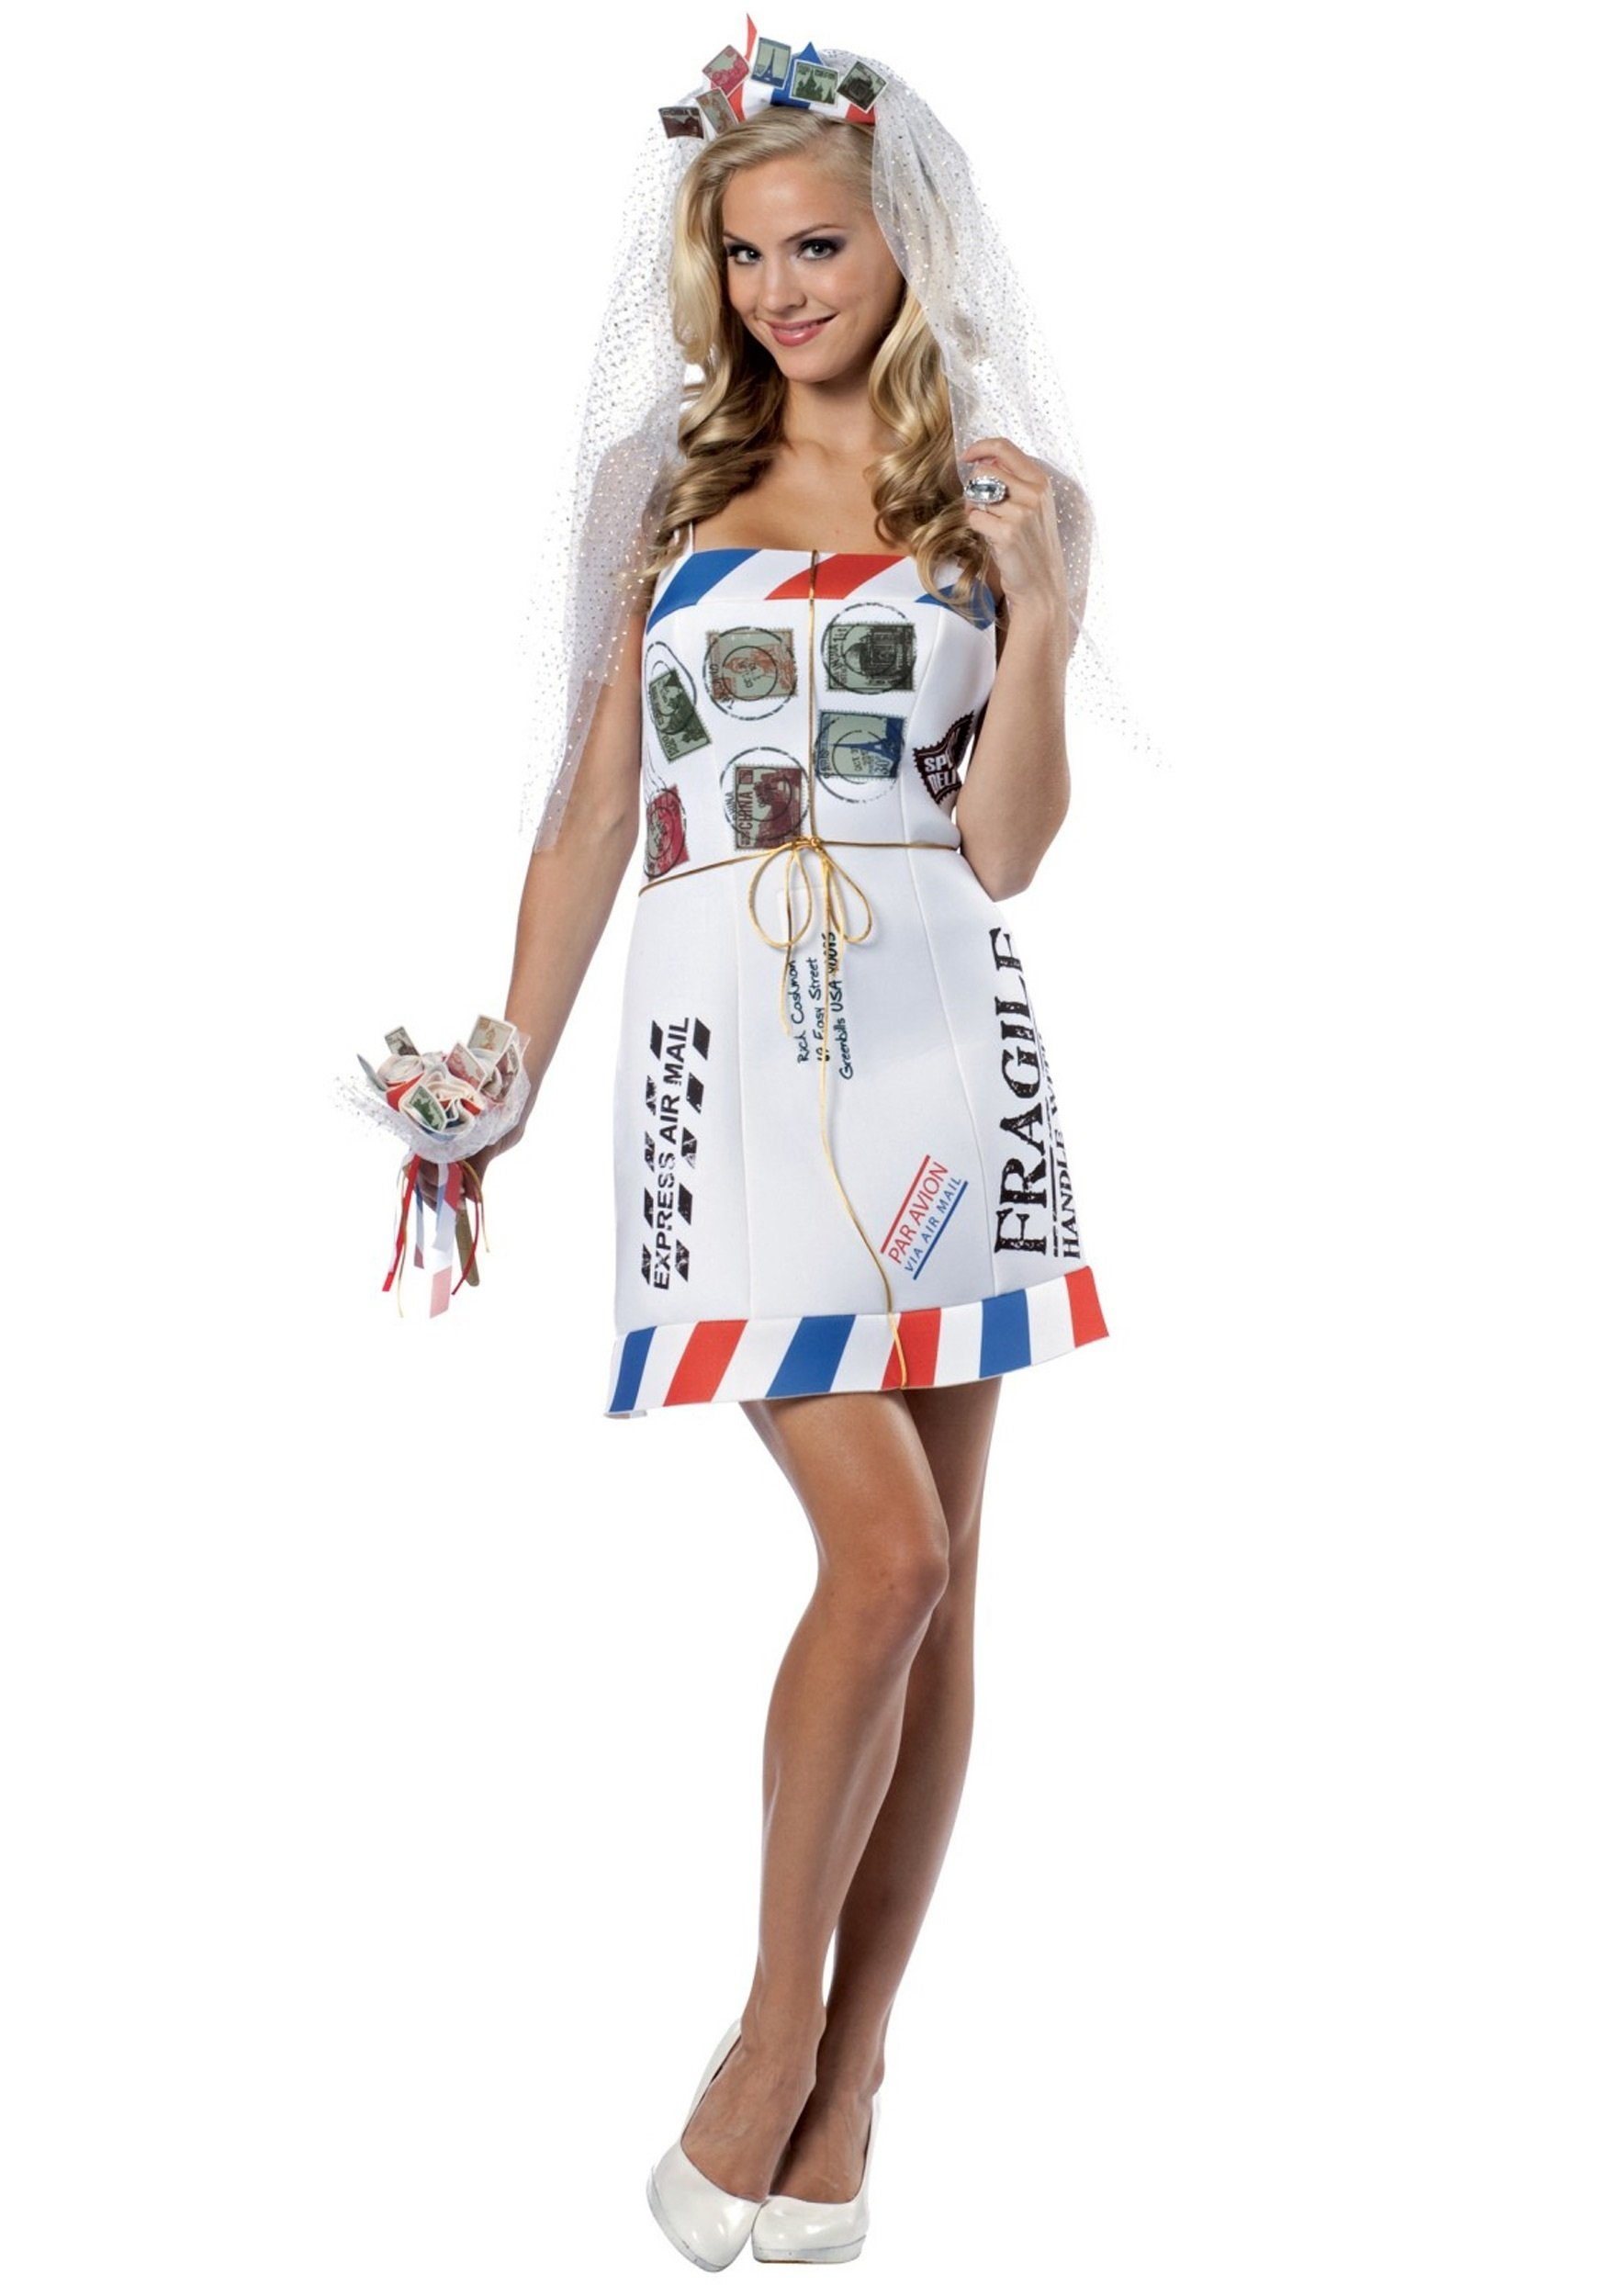 10 Lovable Unique Women Halloween Costume Ideas funny mail order bride costume funny halloween costume ideas for women 2021